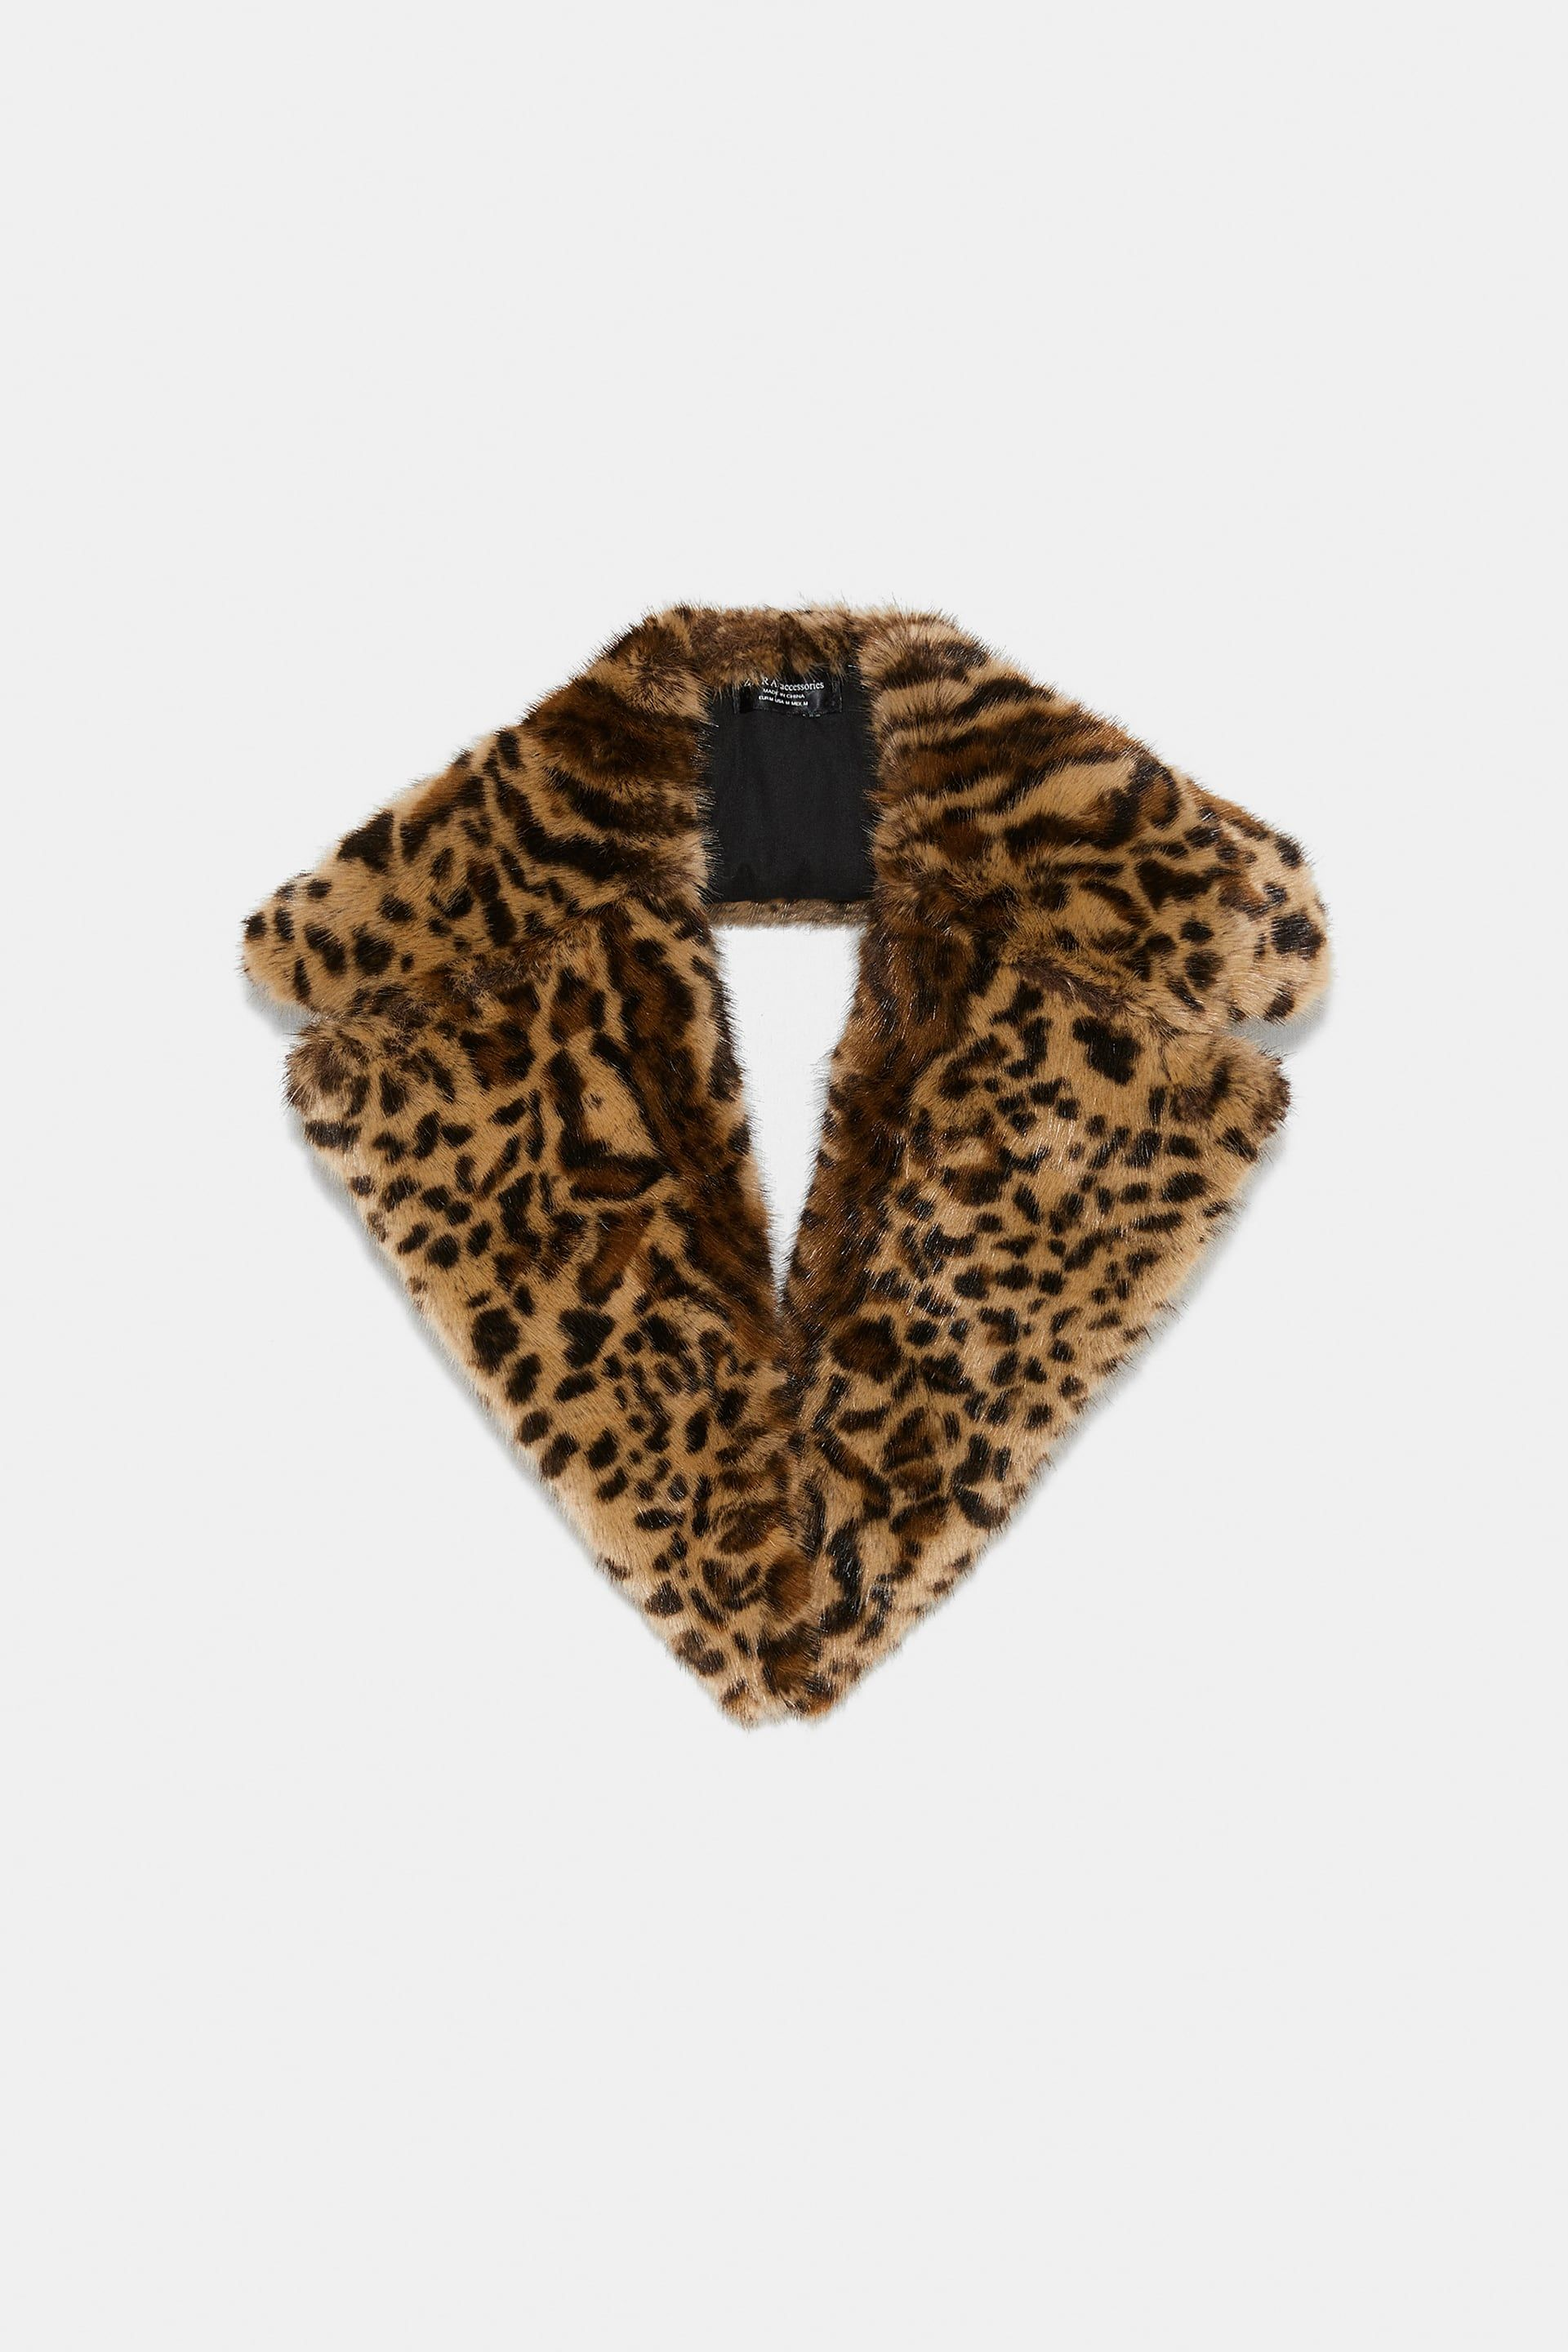 51a7a0692ca7 Faux fur animal print scarf   Clothes to the Max and also other ...